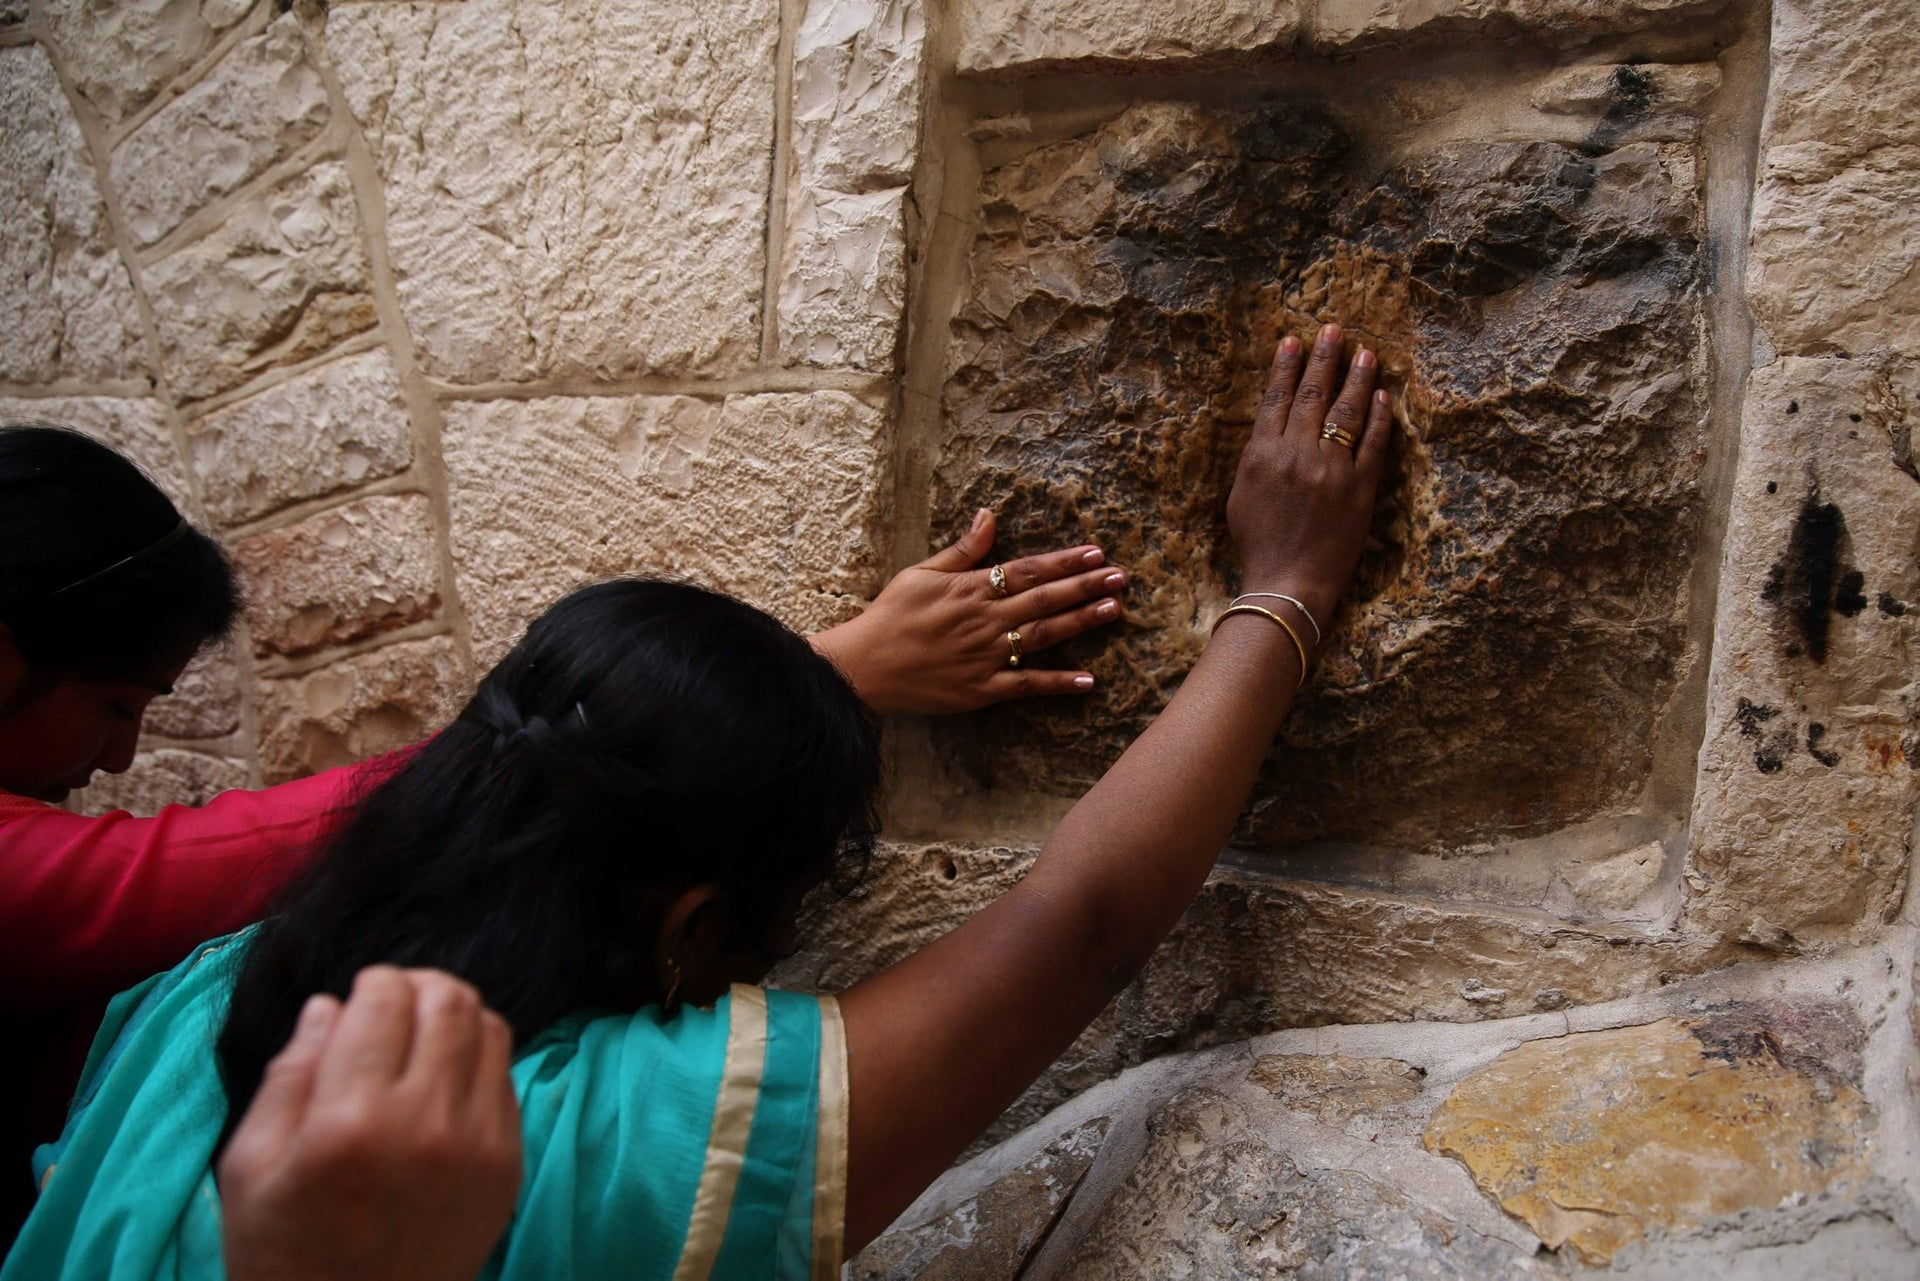 Catholic pilgrims from India pray at the 5th station of the Via Dolorosa (Way of Suffering) in Jerusalem's Old City during the Good Friday procession on March 25, 2016.